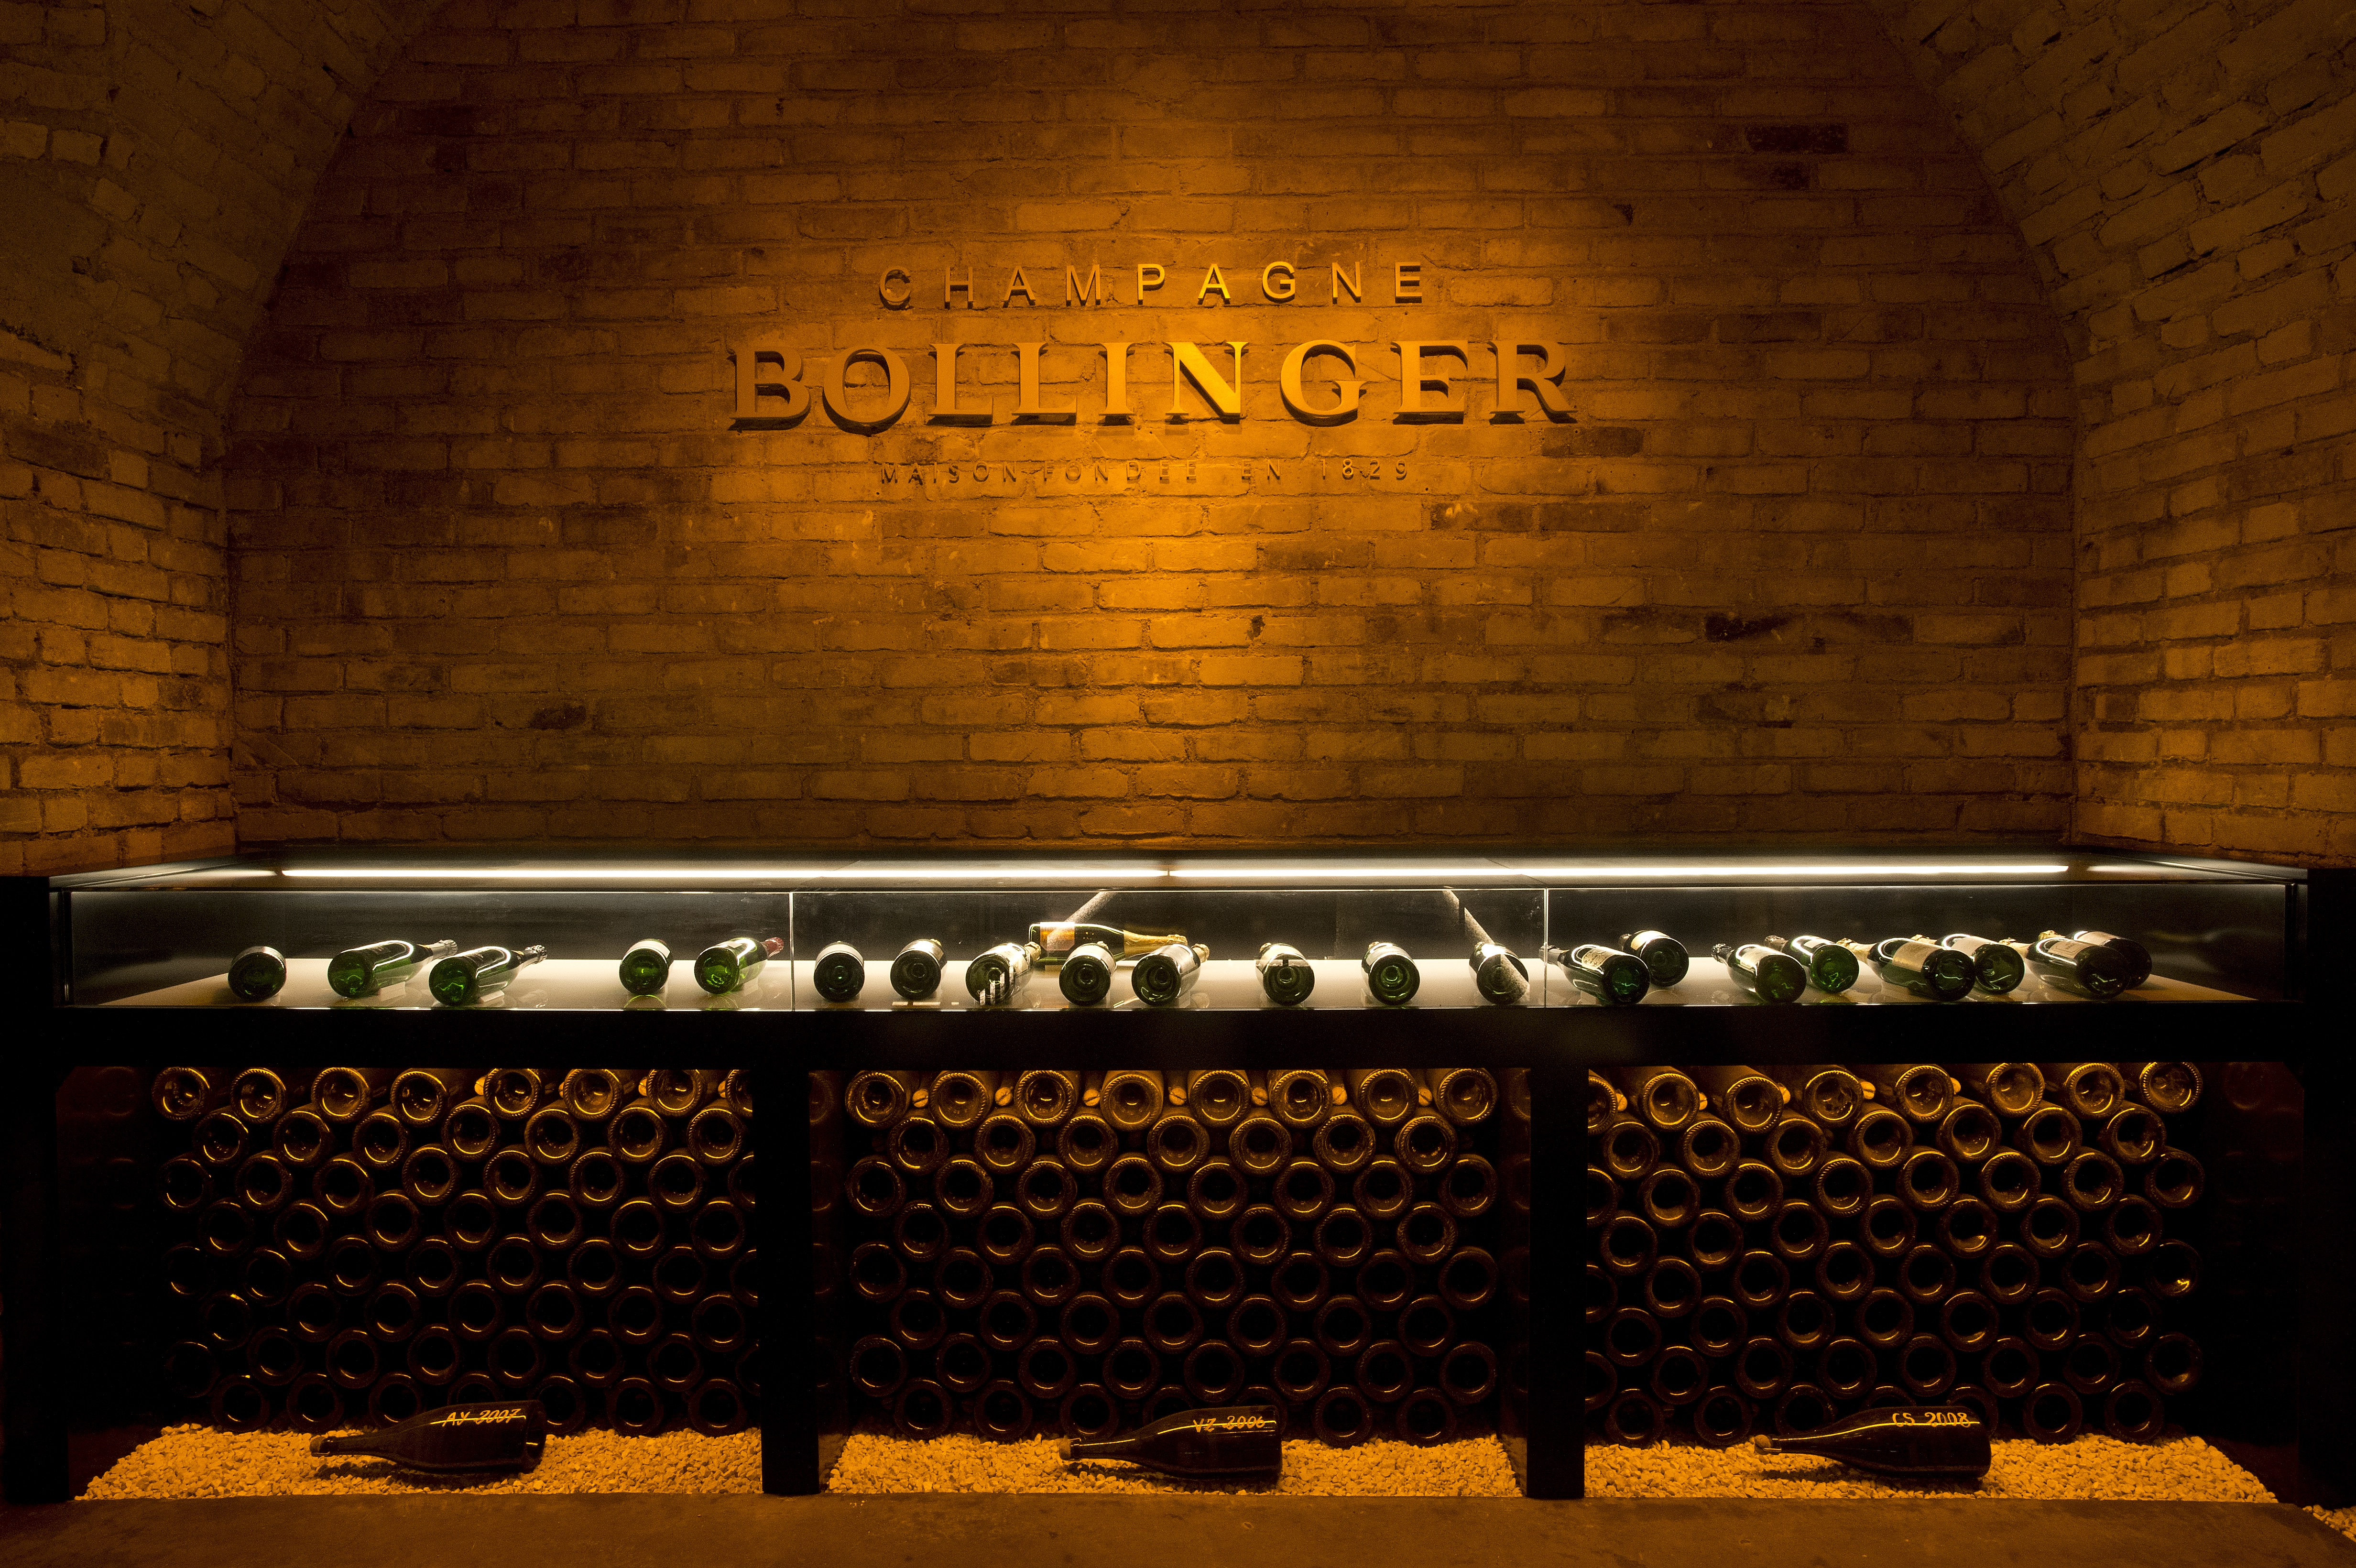 Sotheby's this weekend is presenting an auction of rare wines that have never left the cellars of Bollinger in France, including a rare 1914 vintage.